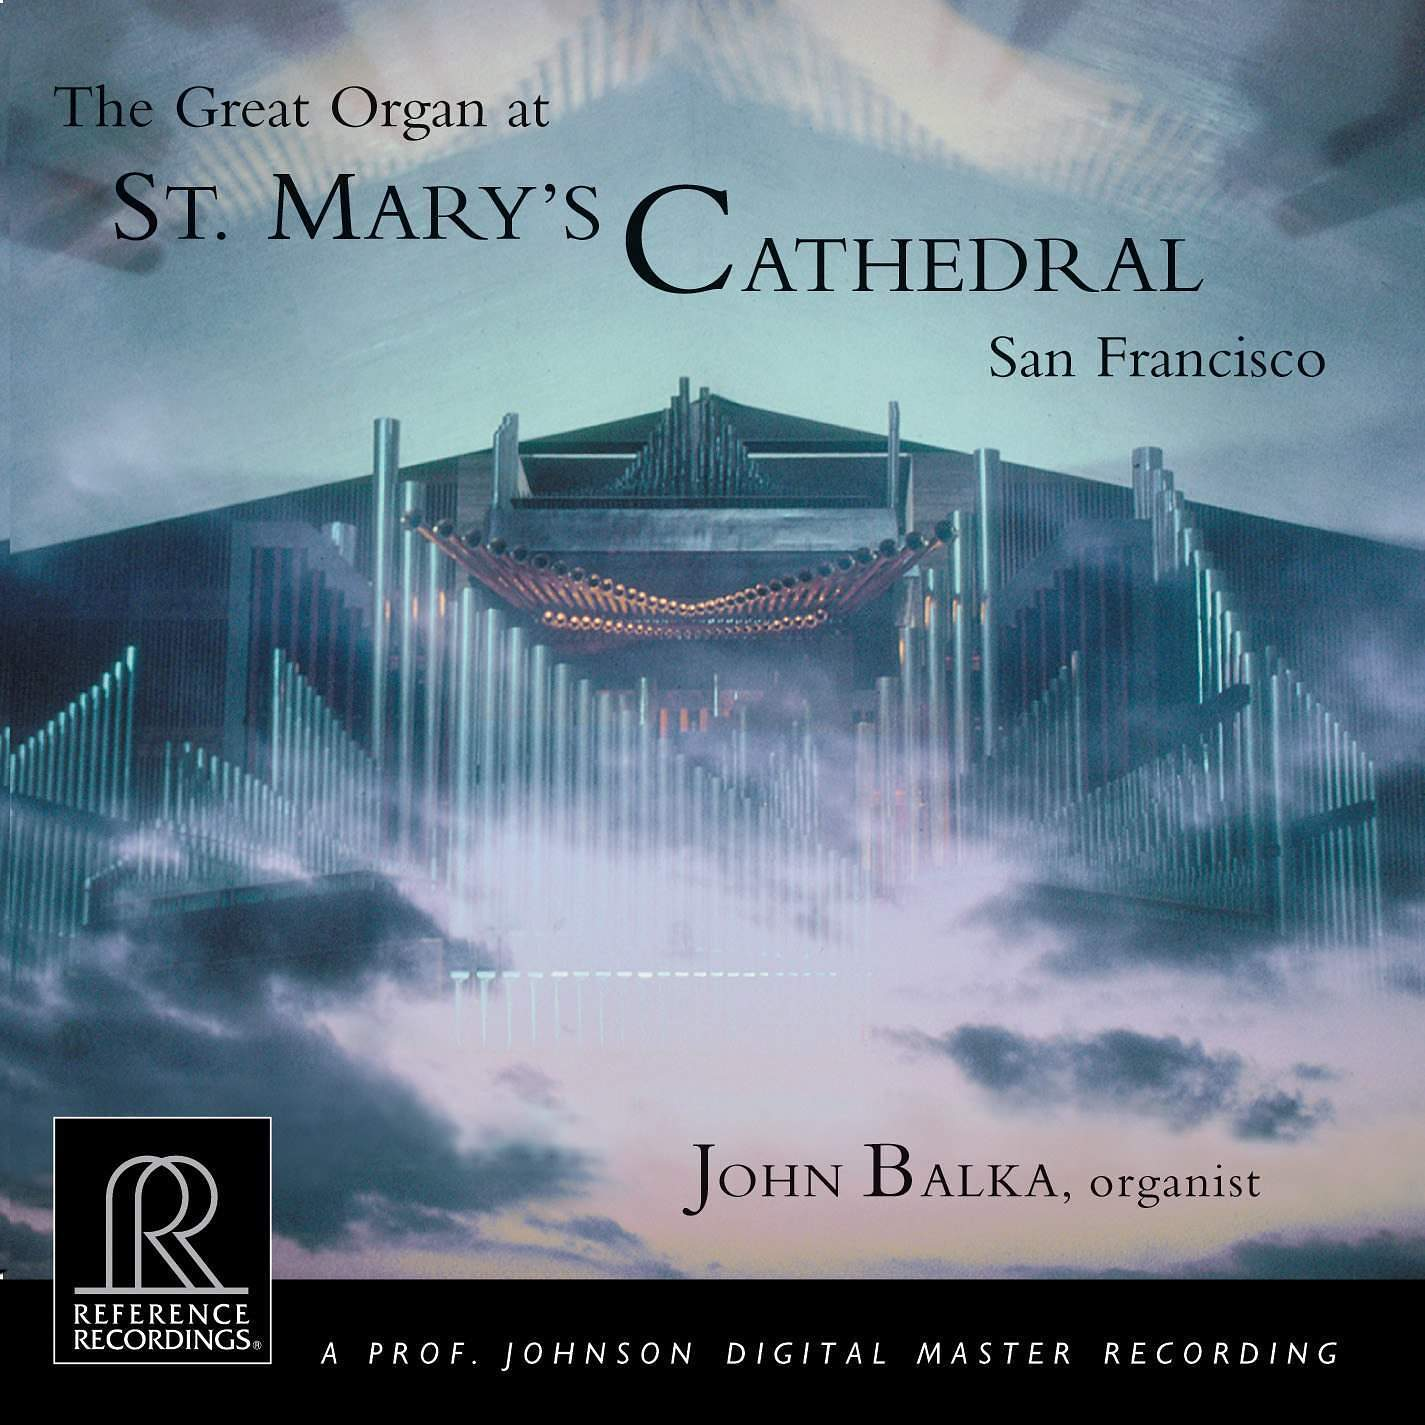 The Great Organ at St. Mary's Cathedral | John Balka